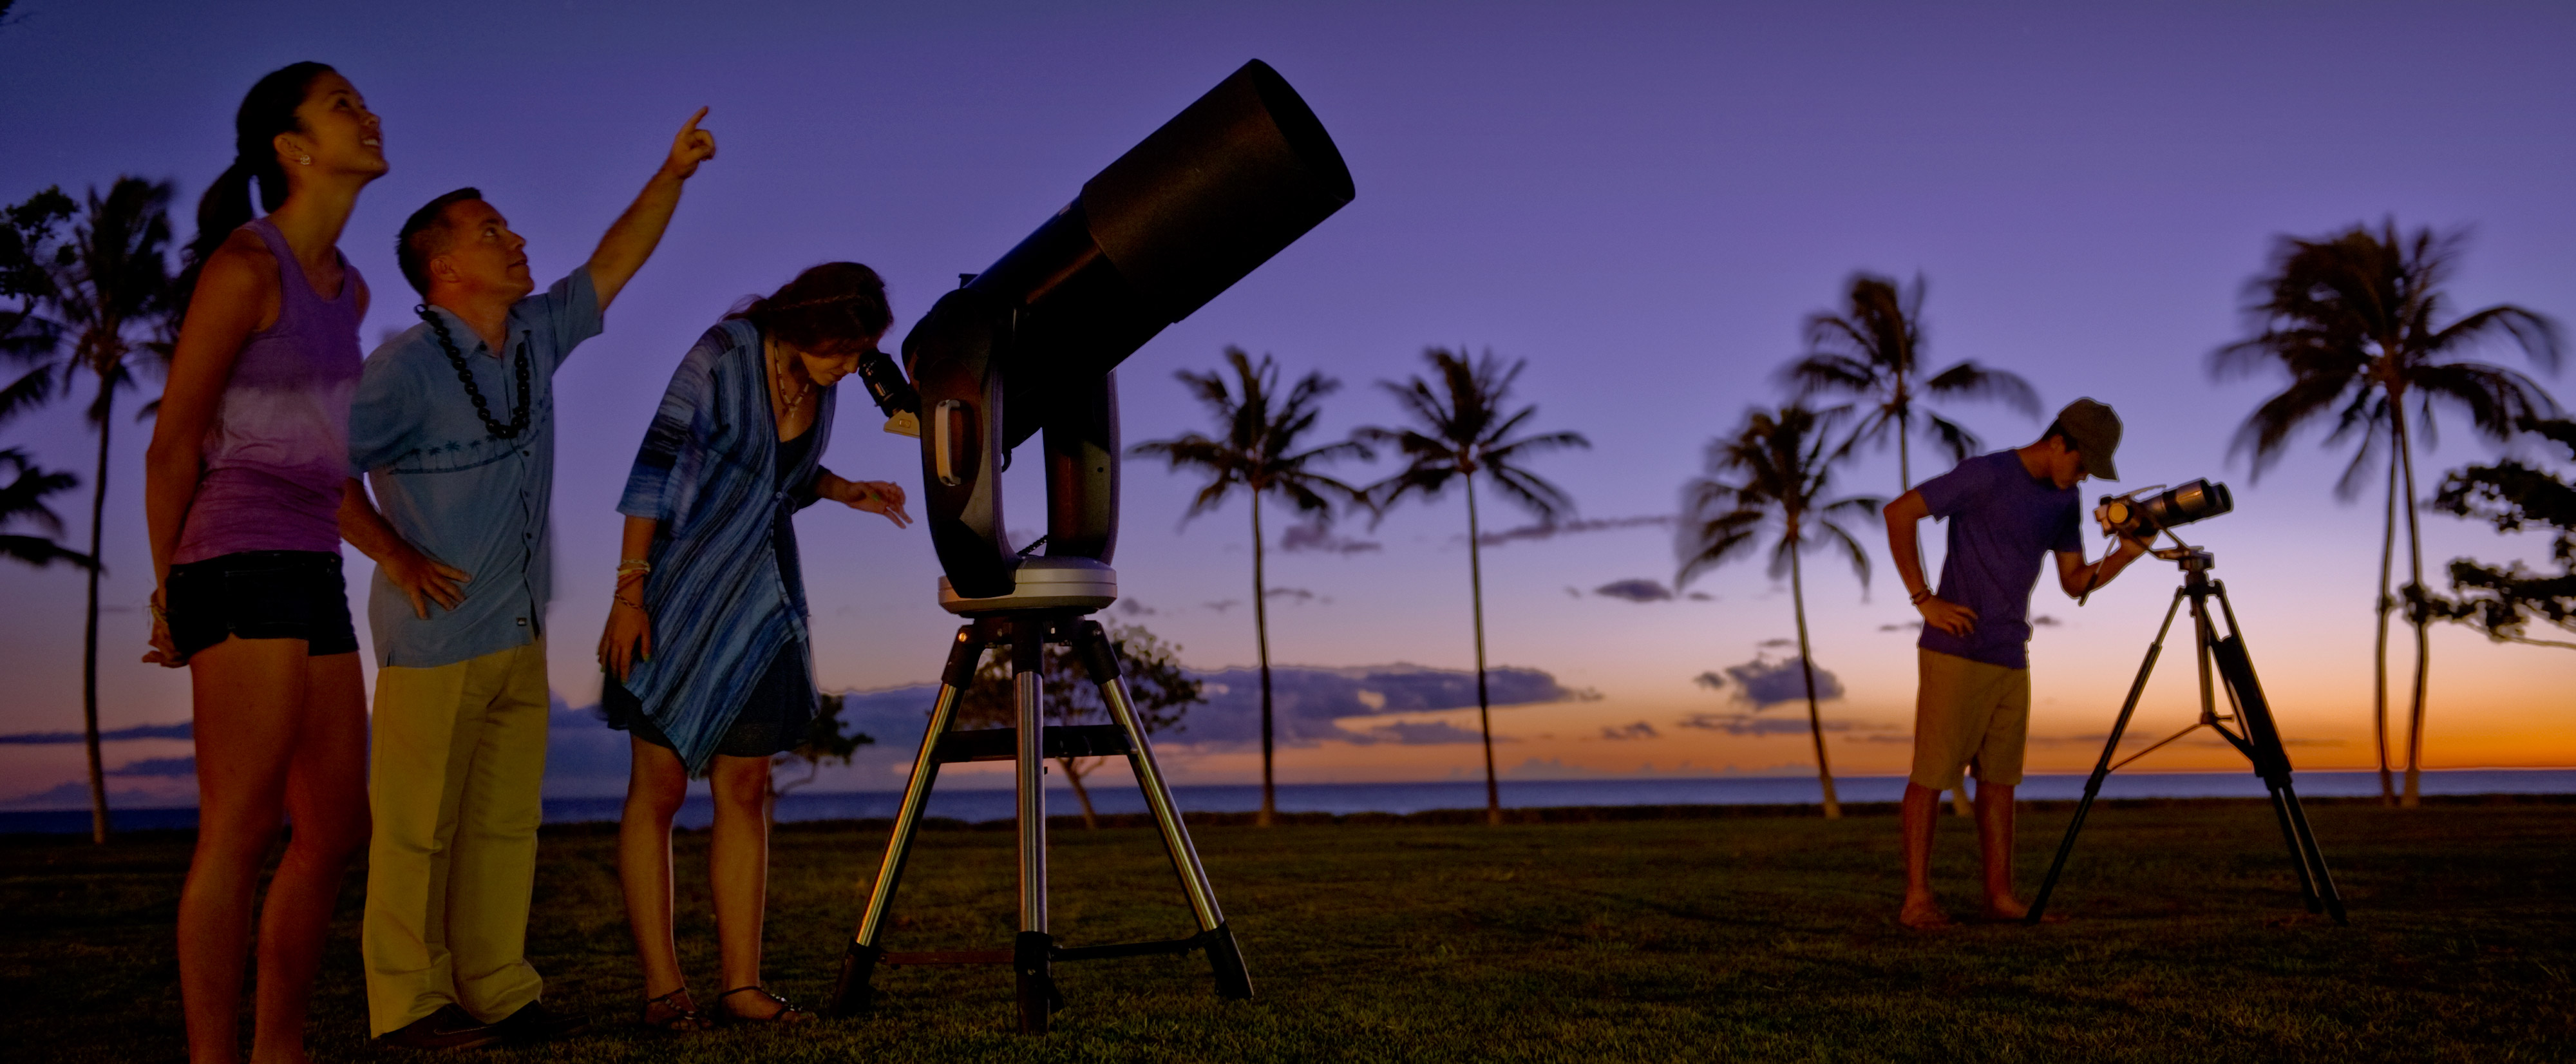 A Cast Member speaks and points skyward as a young woman listens and another looks through a large telescope